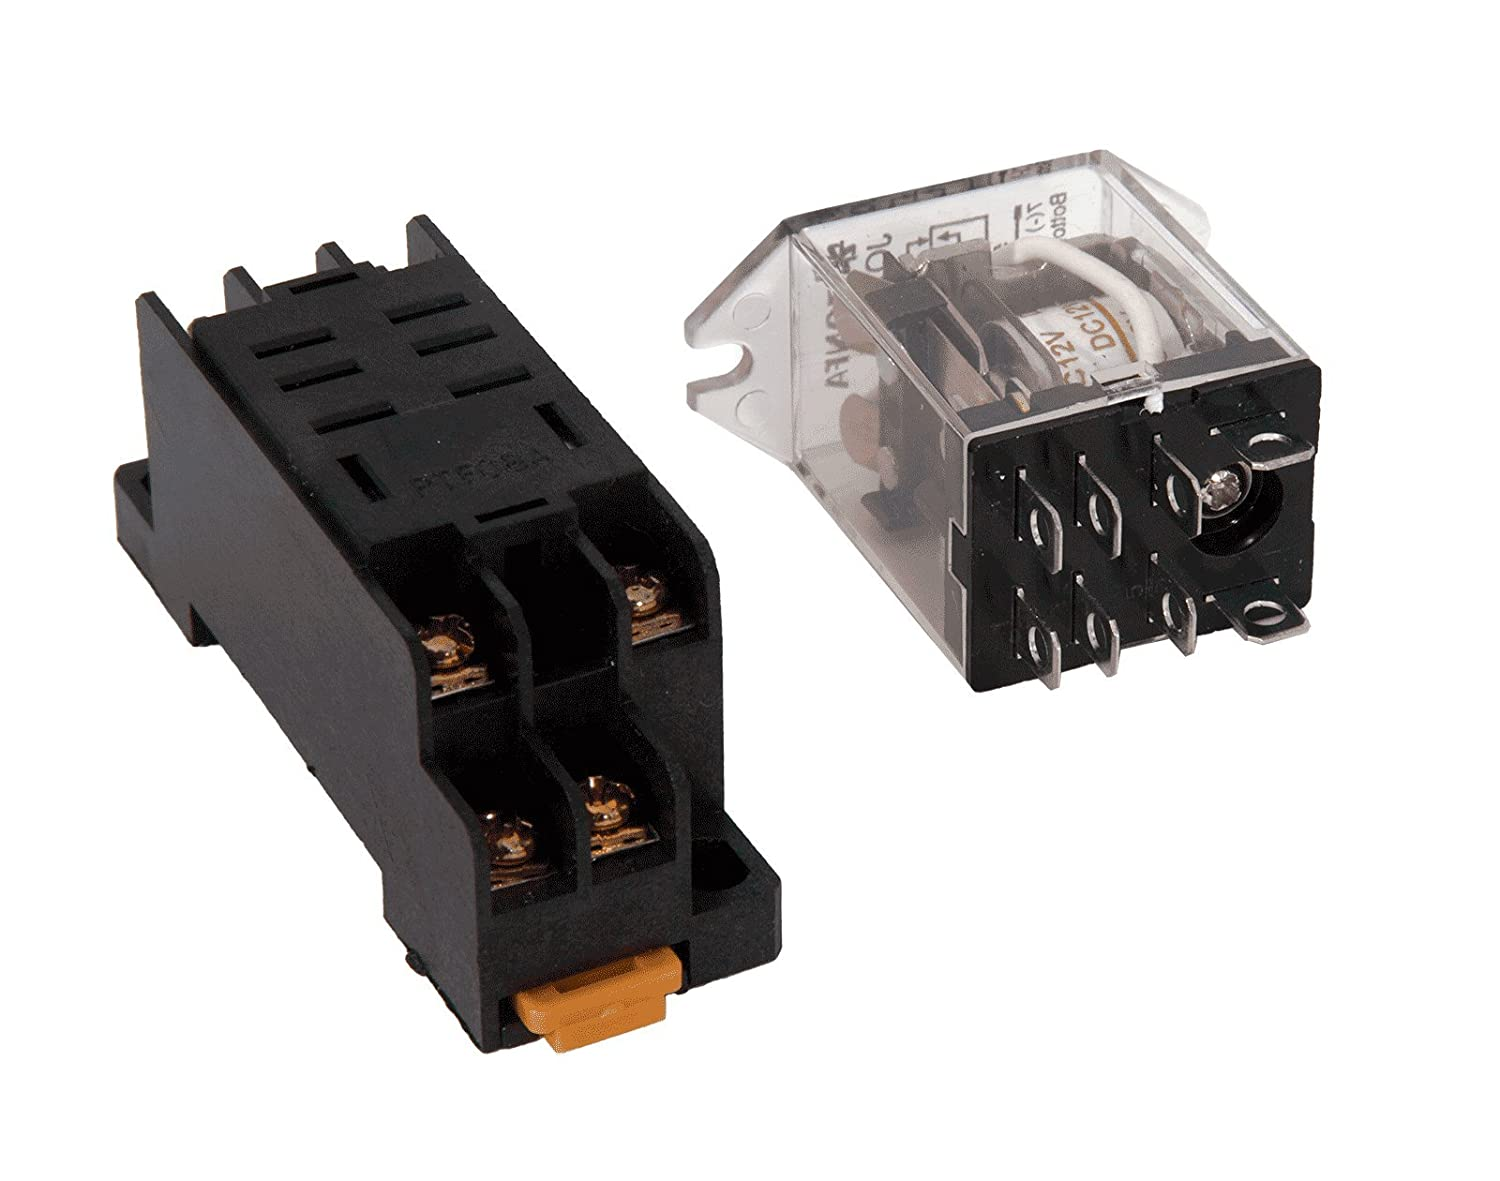 Dpdt Relay 12 Vdc 10a Socket Industrial Toggle Switch Wiring Diagram Together With Double Coil Scientific